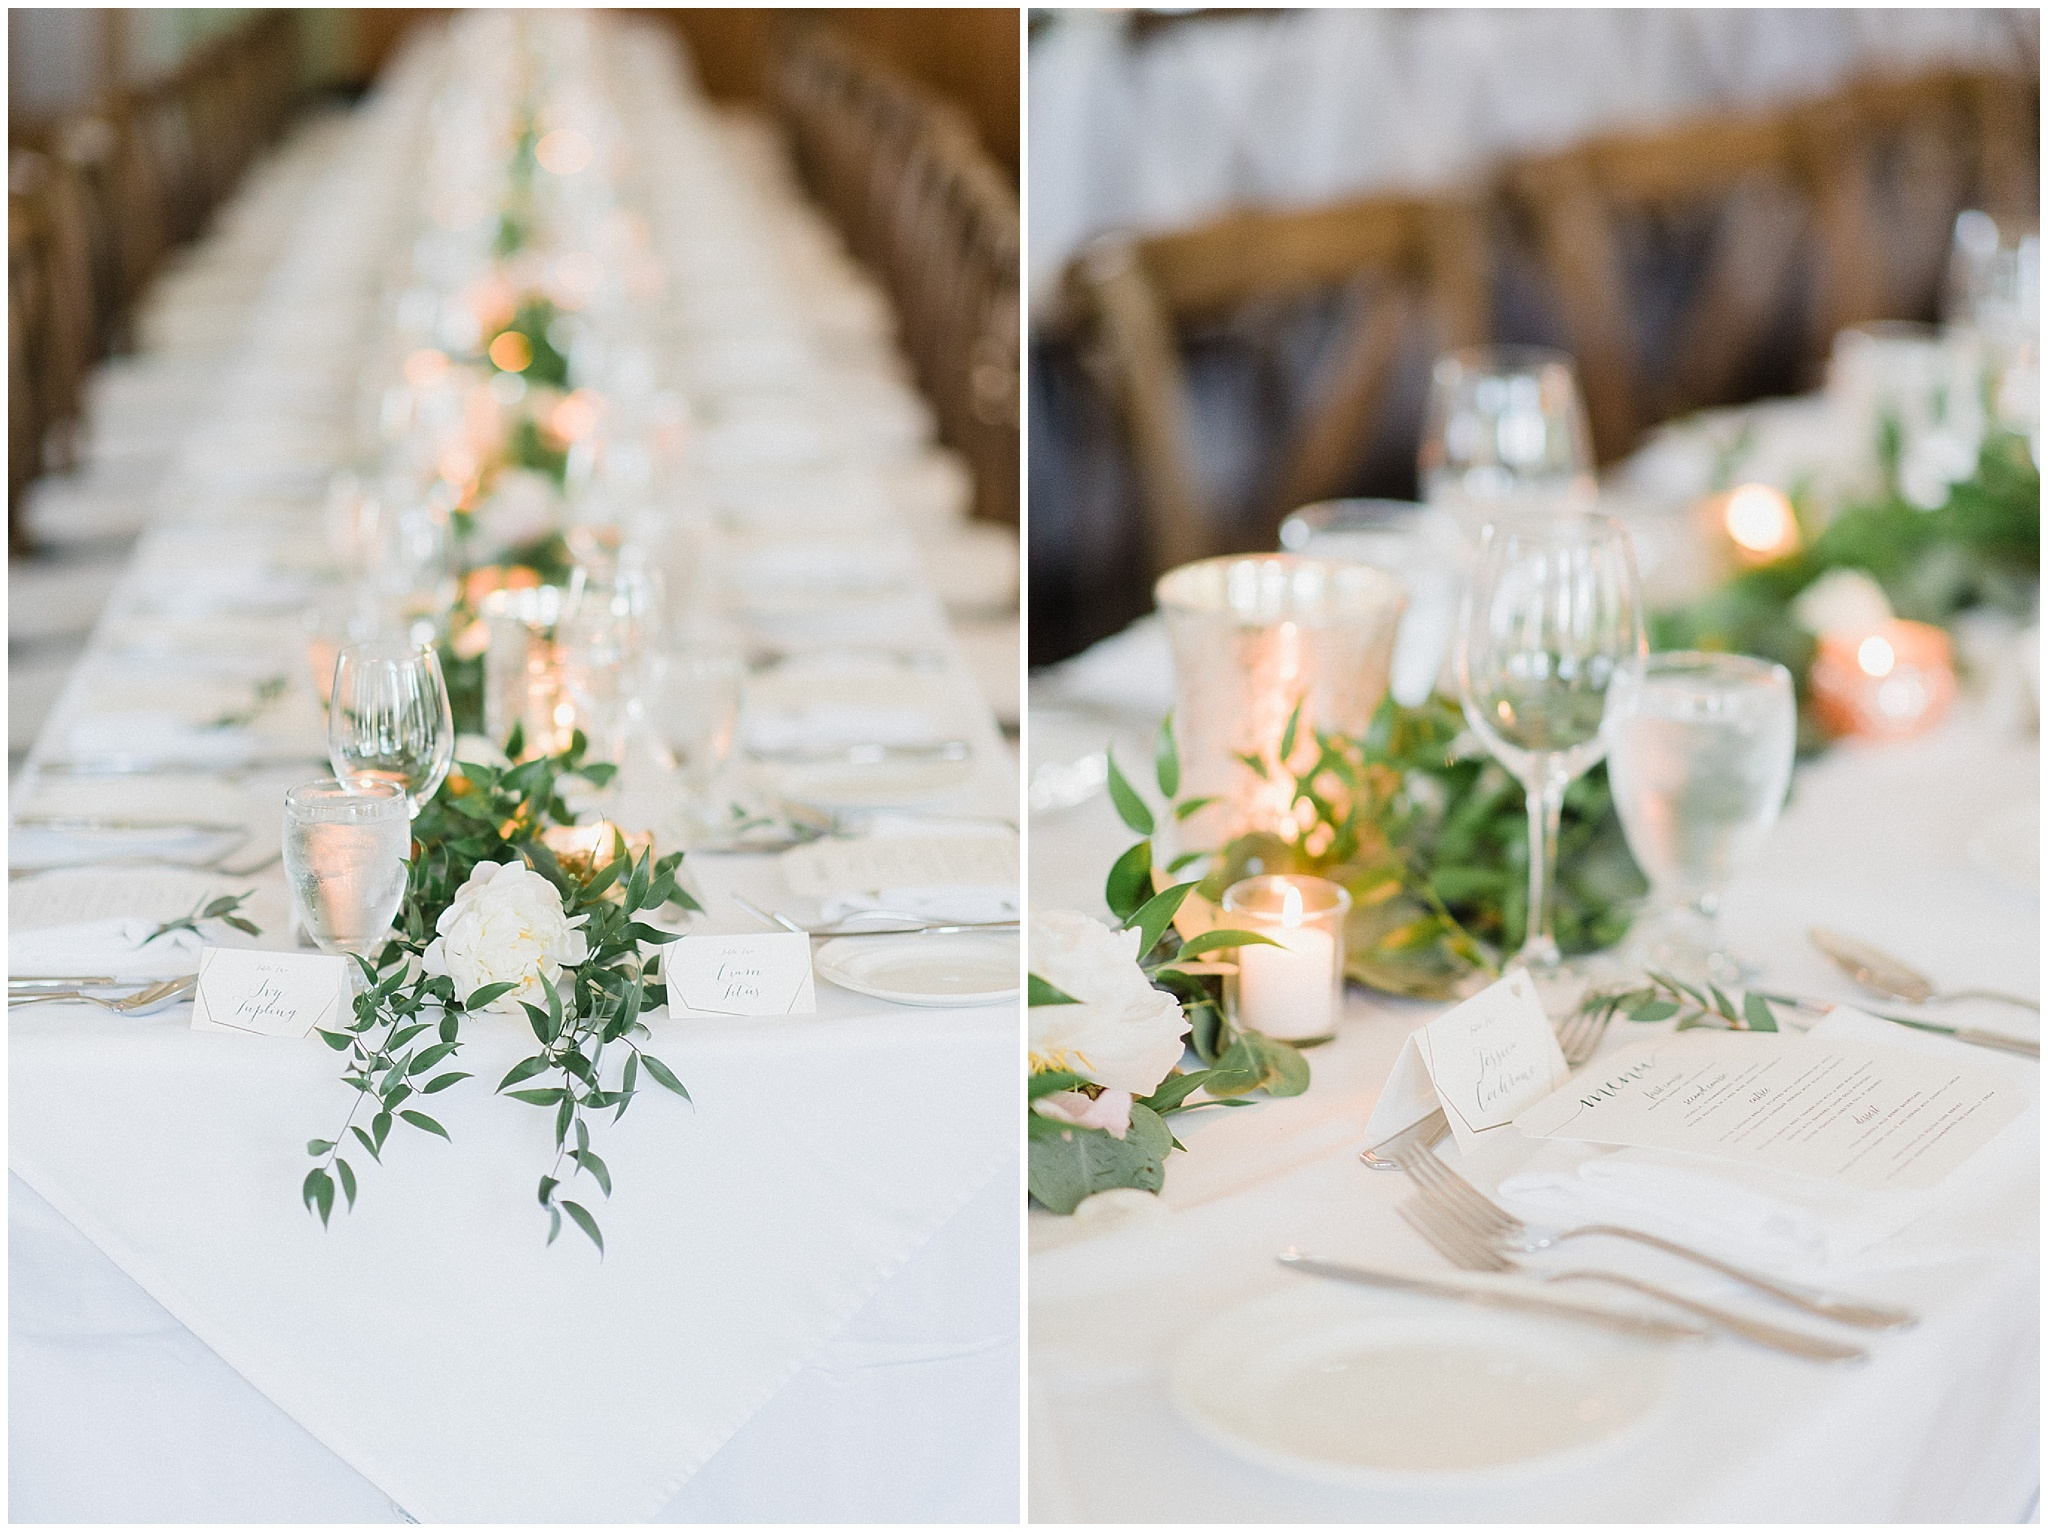 Garland table runners at an elegant cottage country wedding in Muskoka by Jenn Kavanagh Photography